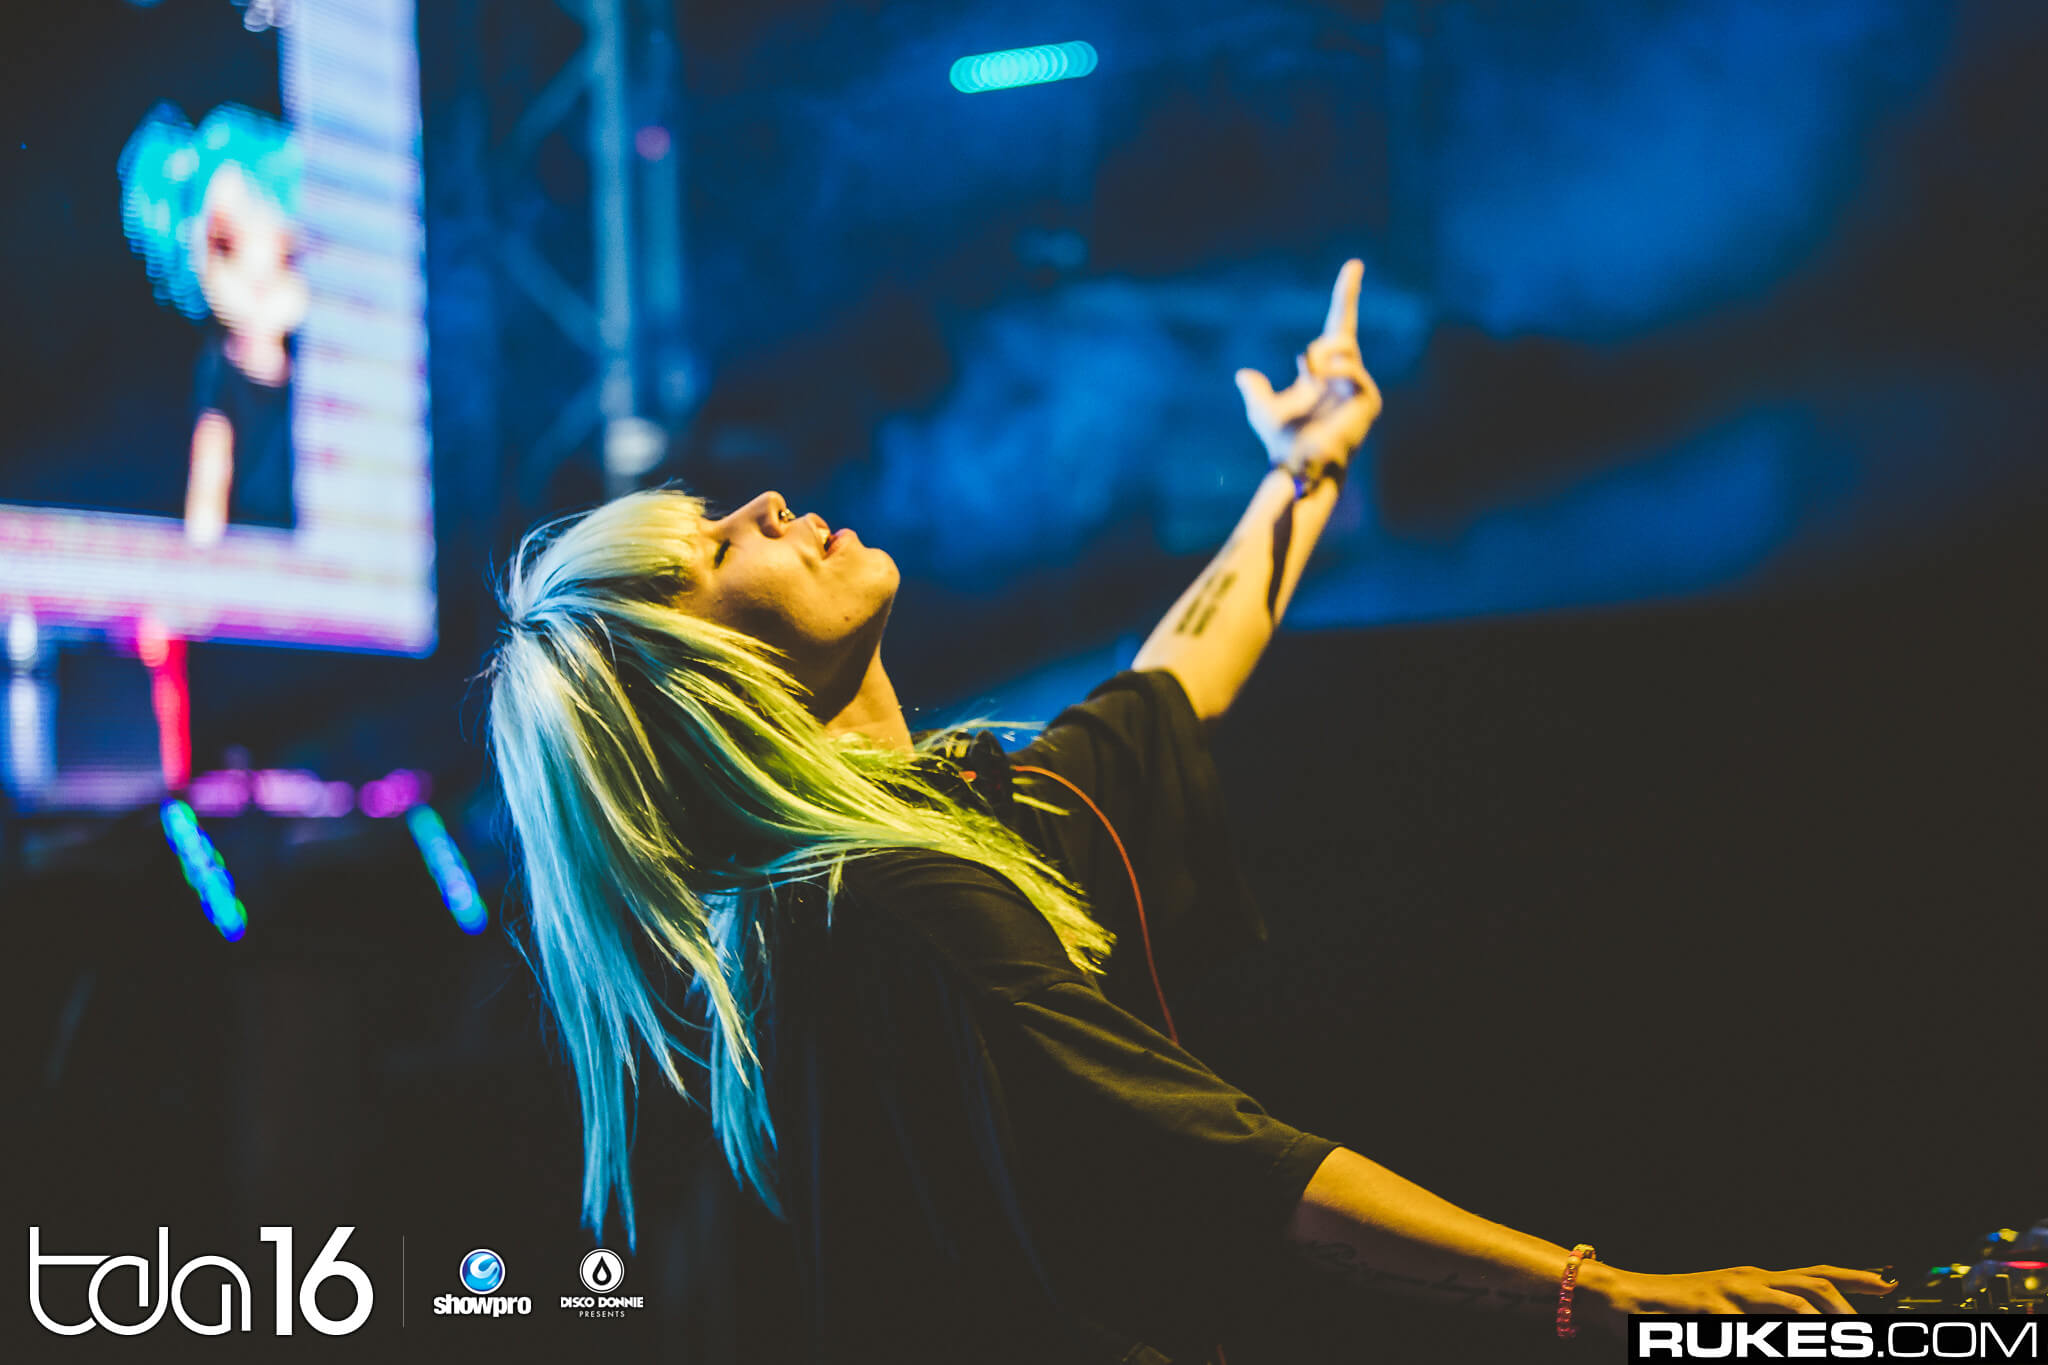 Mija performing at The Day After Festival 2016. Photo by Rukes.